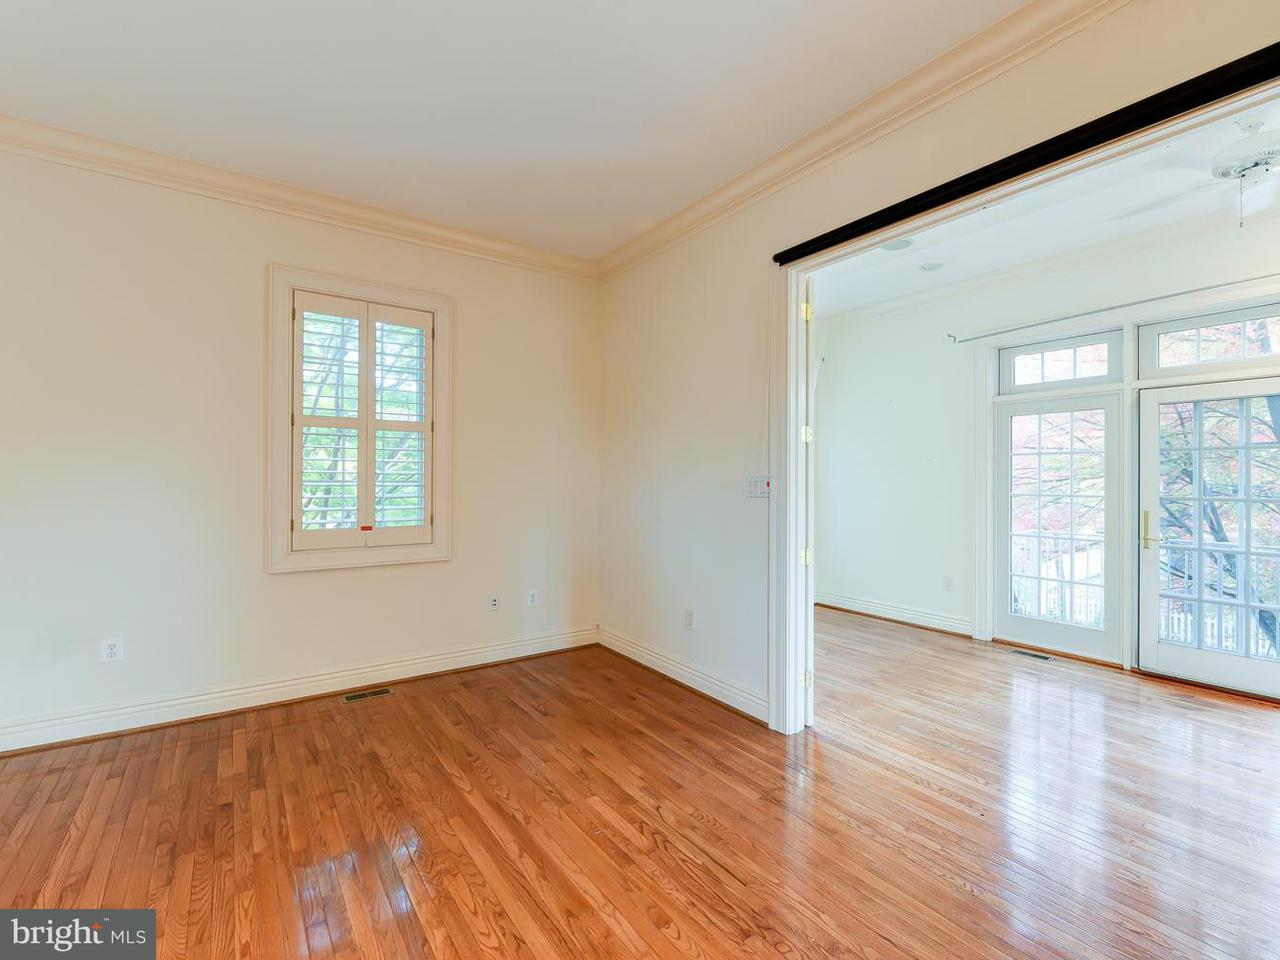 Additional photo for property listing at 4301 BRANDYWINE ST NW 4301 BRANDYWINE ST NW Washington, 哥倫比亞特區 20016 美國